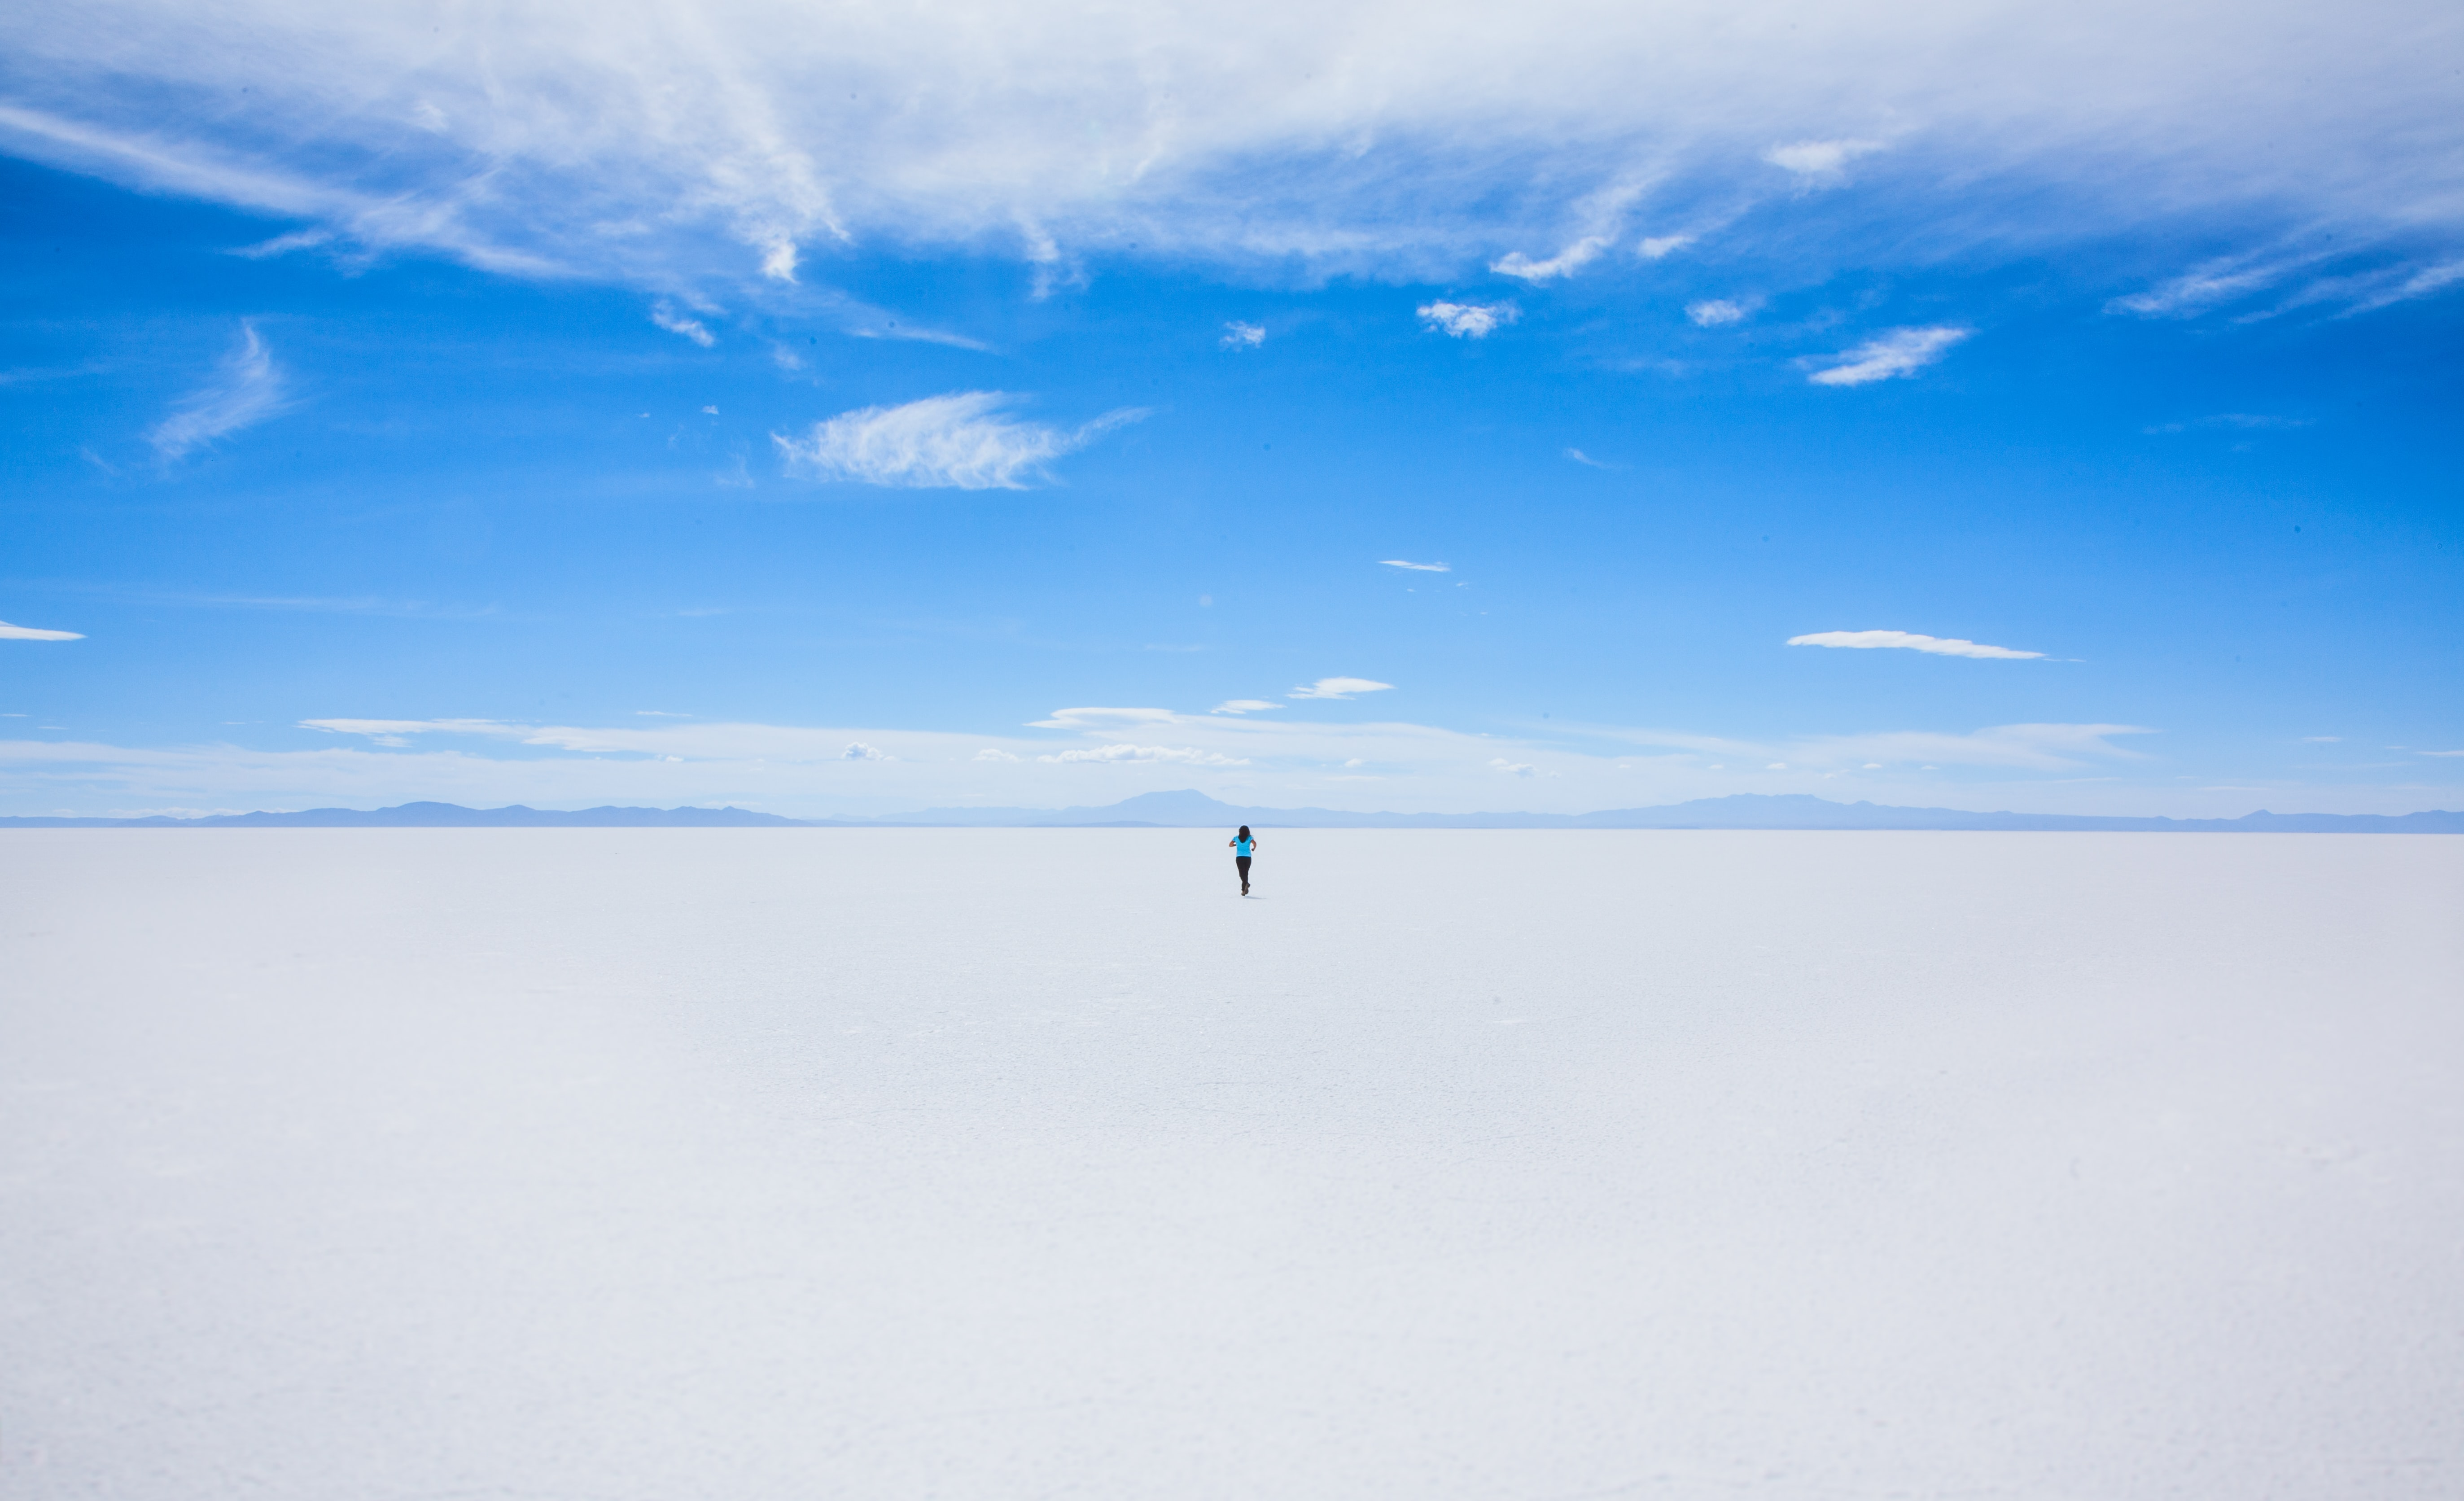 Hiker walks alone toward the desert horizon in Uyuni Salt Flat